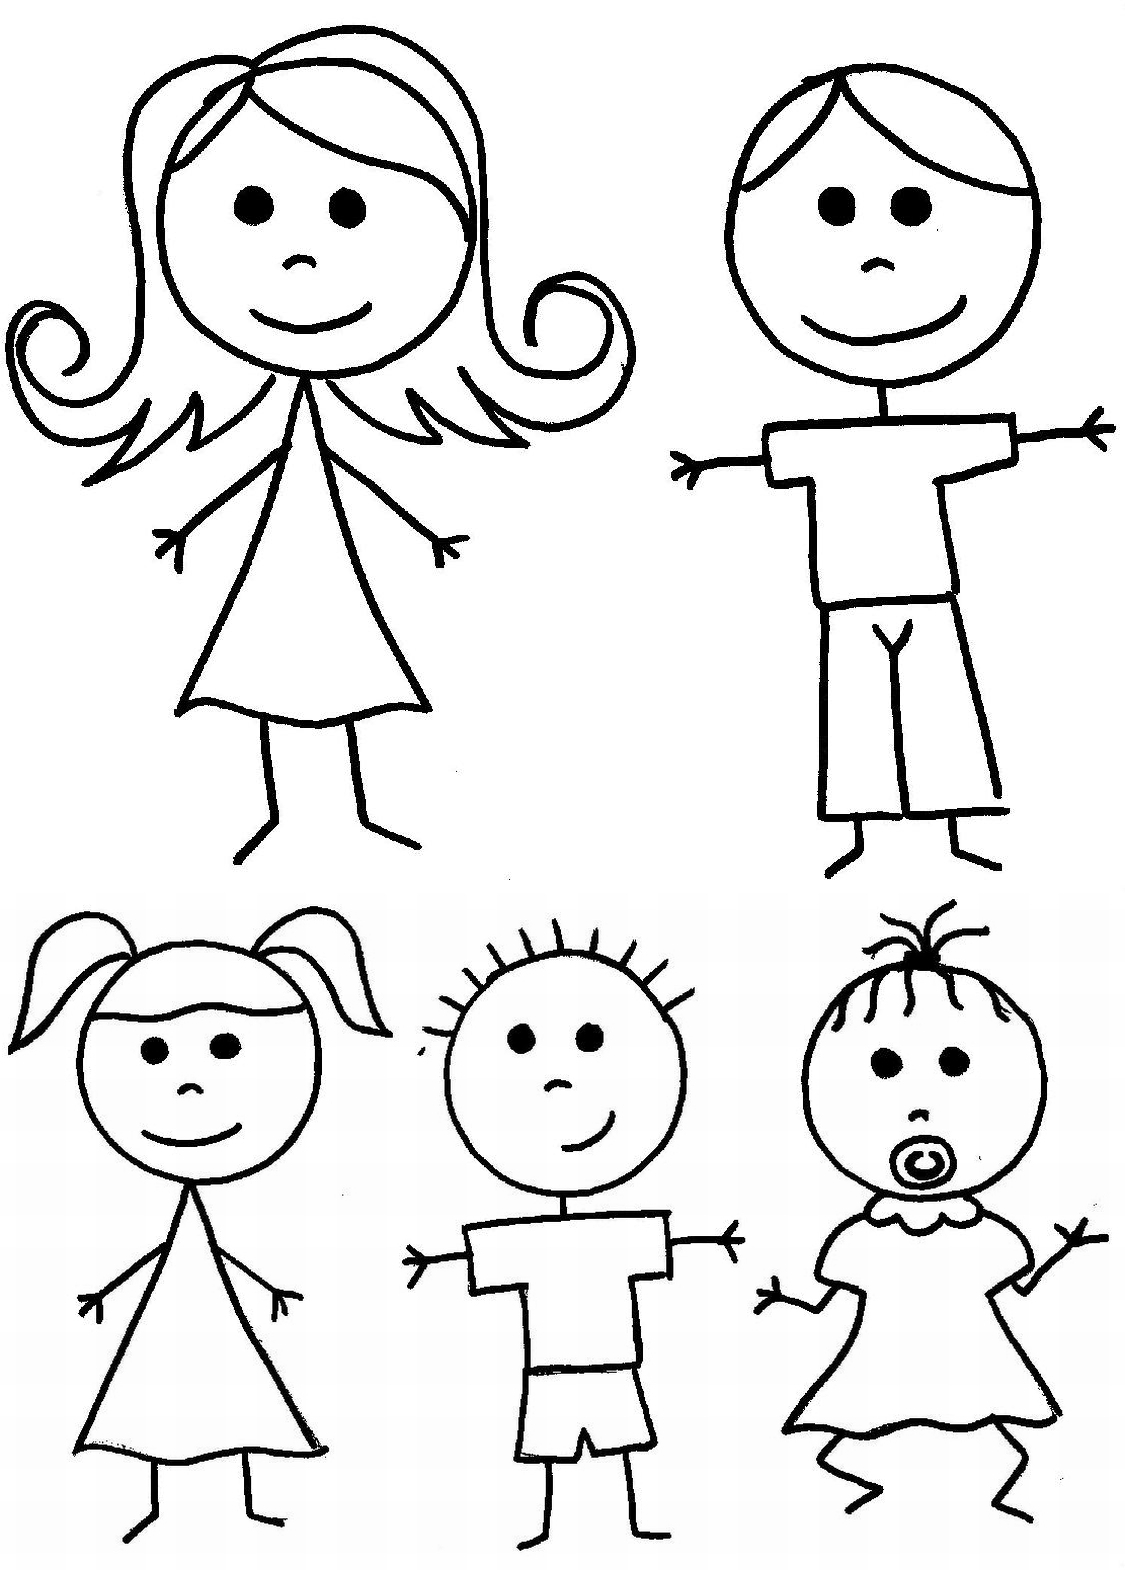 1125x1570 Free Printable Stick Figure Clip Art